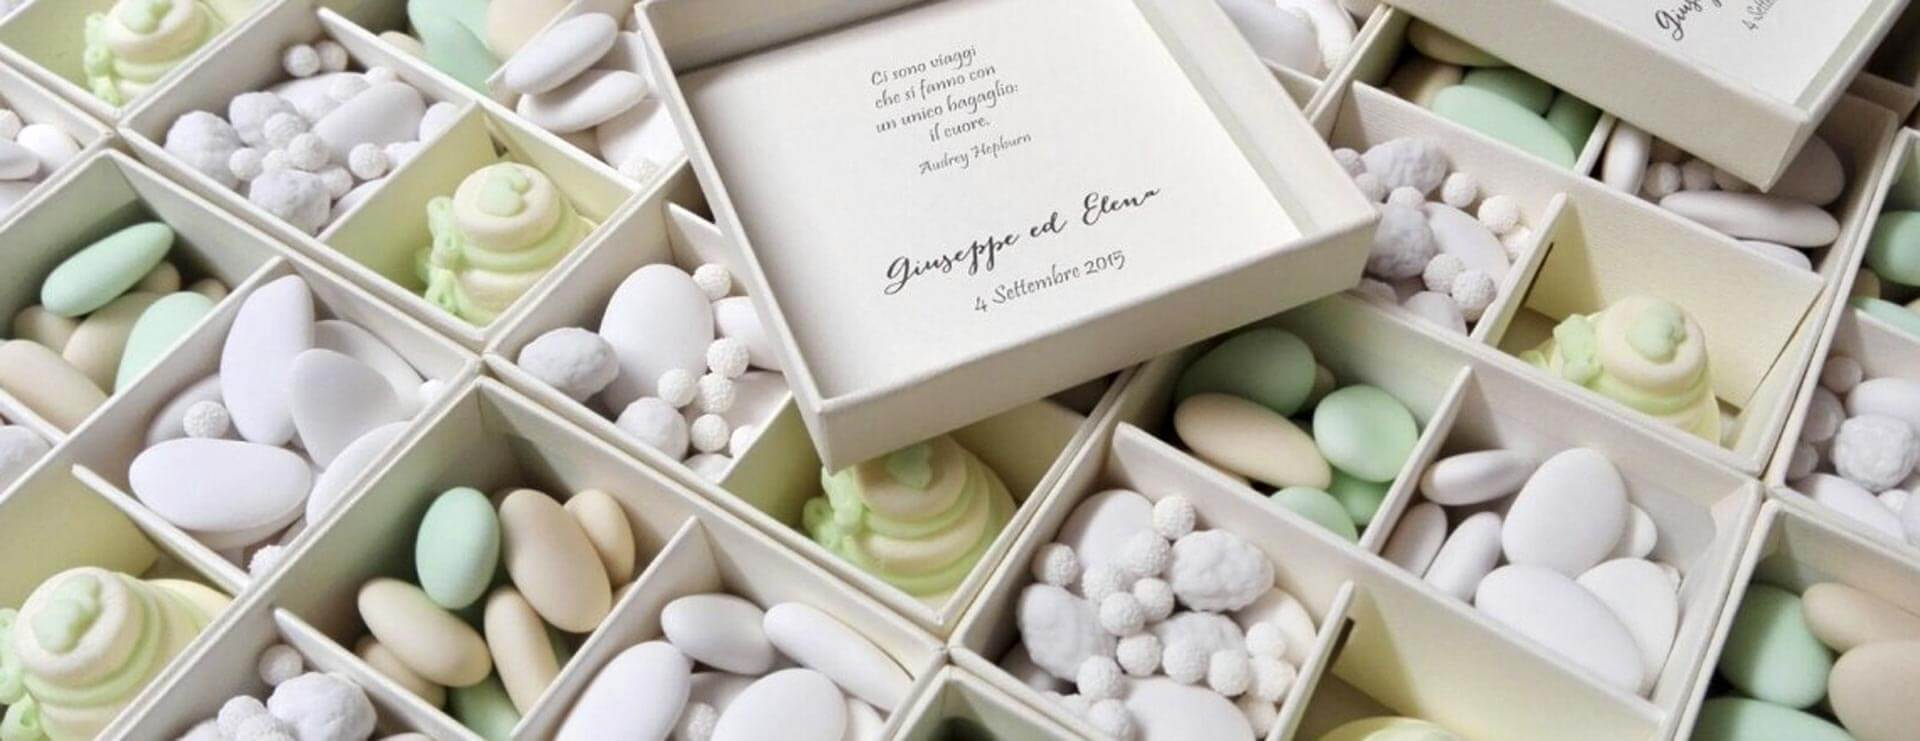 Italian Wedding Favors Ideas - Creative Italian Weddings | Exclusive ...